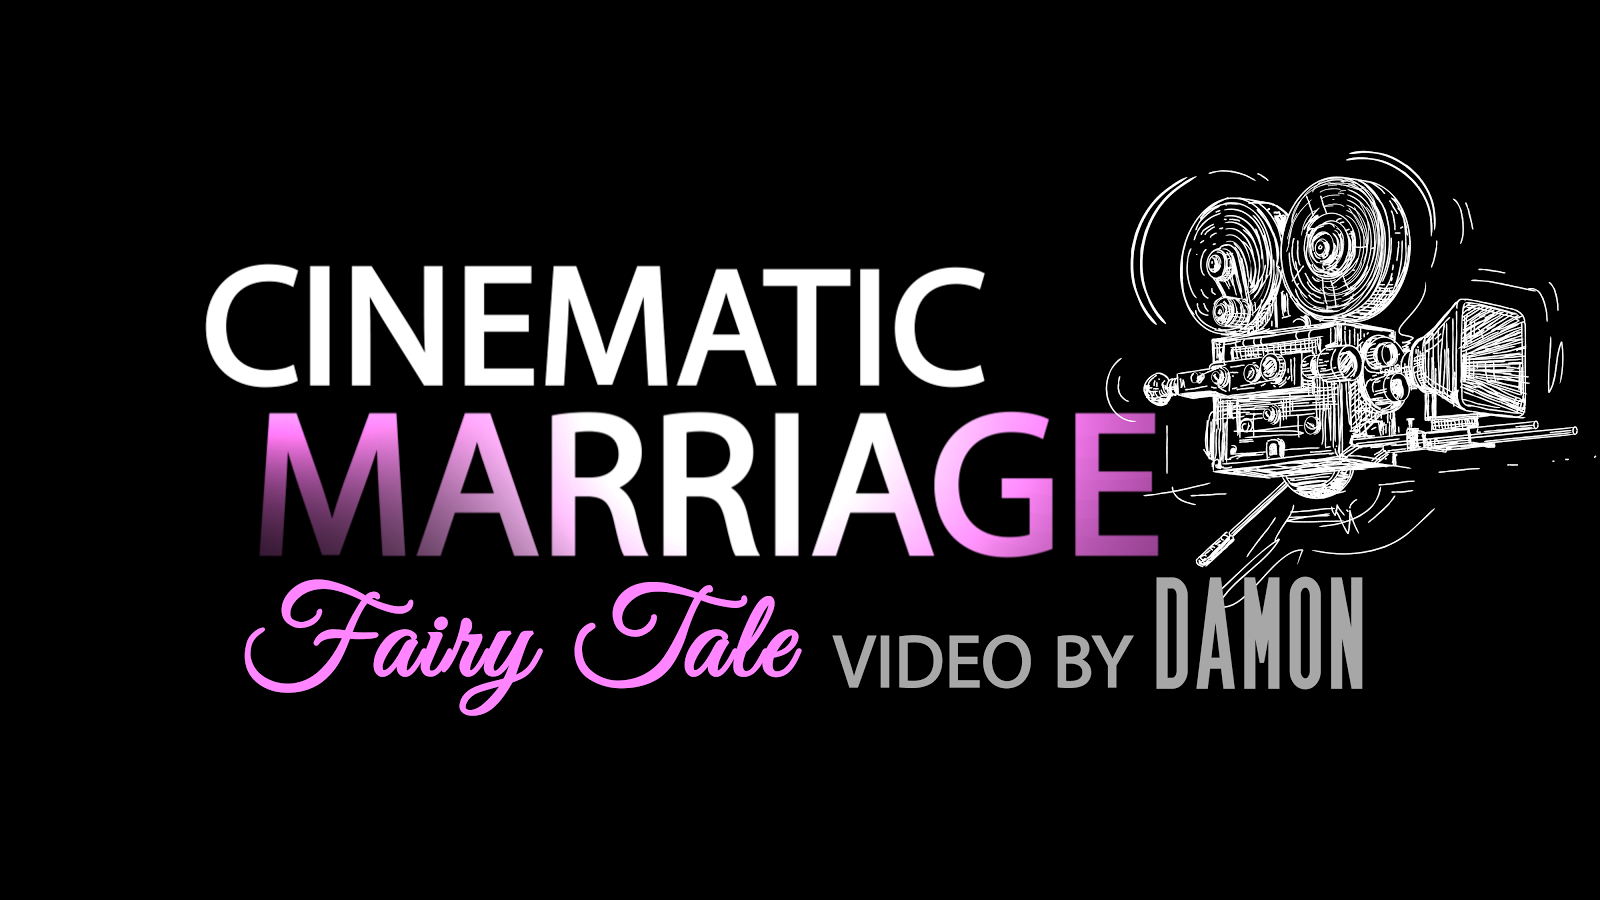 cinematicmarriage.com